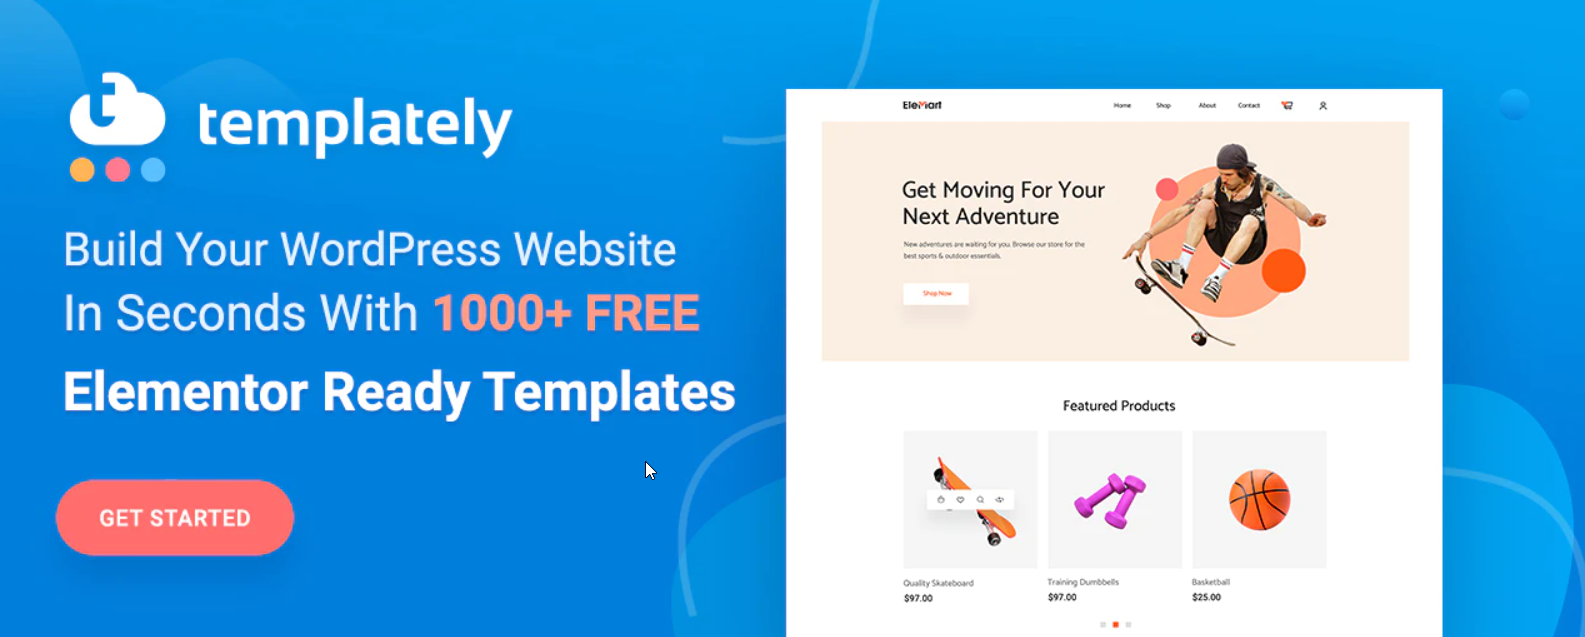 Best Ready Elementor Template Packs: March 2021 Edition 4